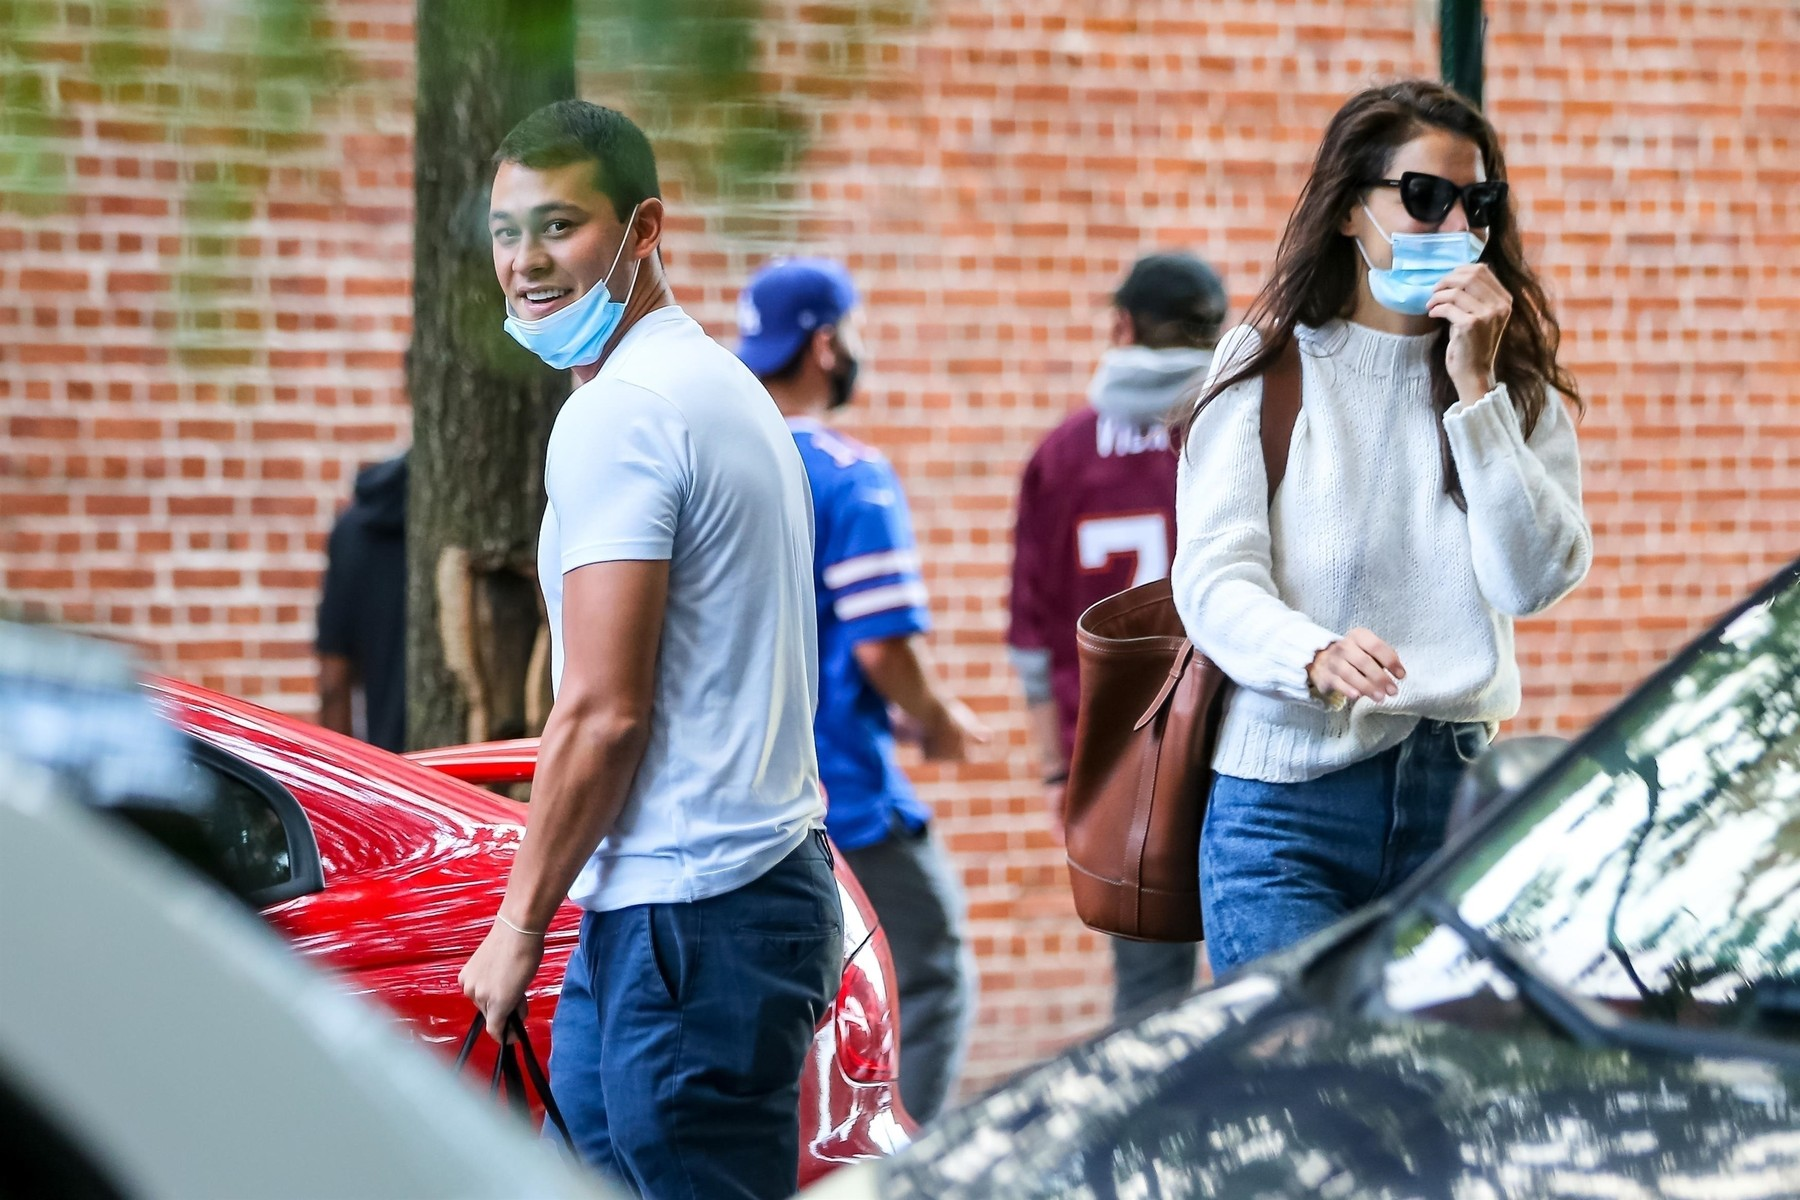 New York, CA  - *PREMIUM-EXCLUSIVE*  - *WEB EMBARGO UNTIL 9 AM PDT on September 15, 2020* Katie Holmes and Emilio Vitolo Jr. spend Sunday afternoon together. The Actress took an Uber to visit her new boyfriend at his residence. After 5 hours the couple was spotted leaving Emilio's place. Emilio dropped off the actress and headed to his restaurant after giving her a goodbye kiss. *Shot on September 13, 2020*  *UK Clients - Pictures Containing Children Please Pixelate Face Prior To Publication*,Image: 557947345, License: Rights-managed, Restrictions: RIGHTS: WORLDWIDE EXCEPT IN UNITED KINGDOM, Model Release: no, Credit line: BACKGRID / Backgrid USA / Profimedia